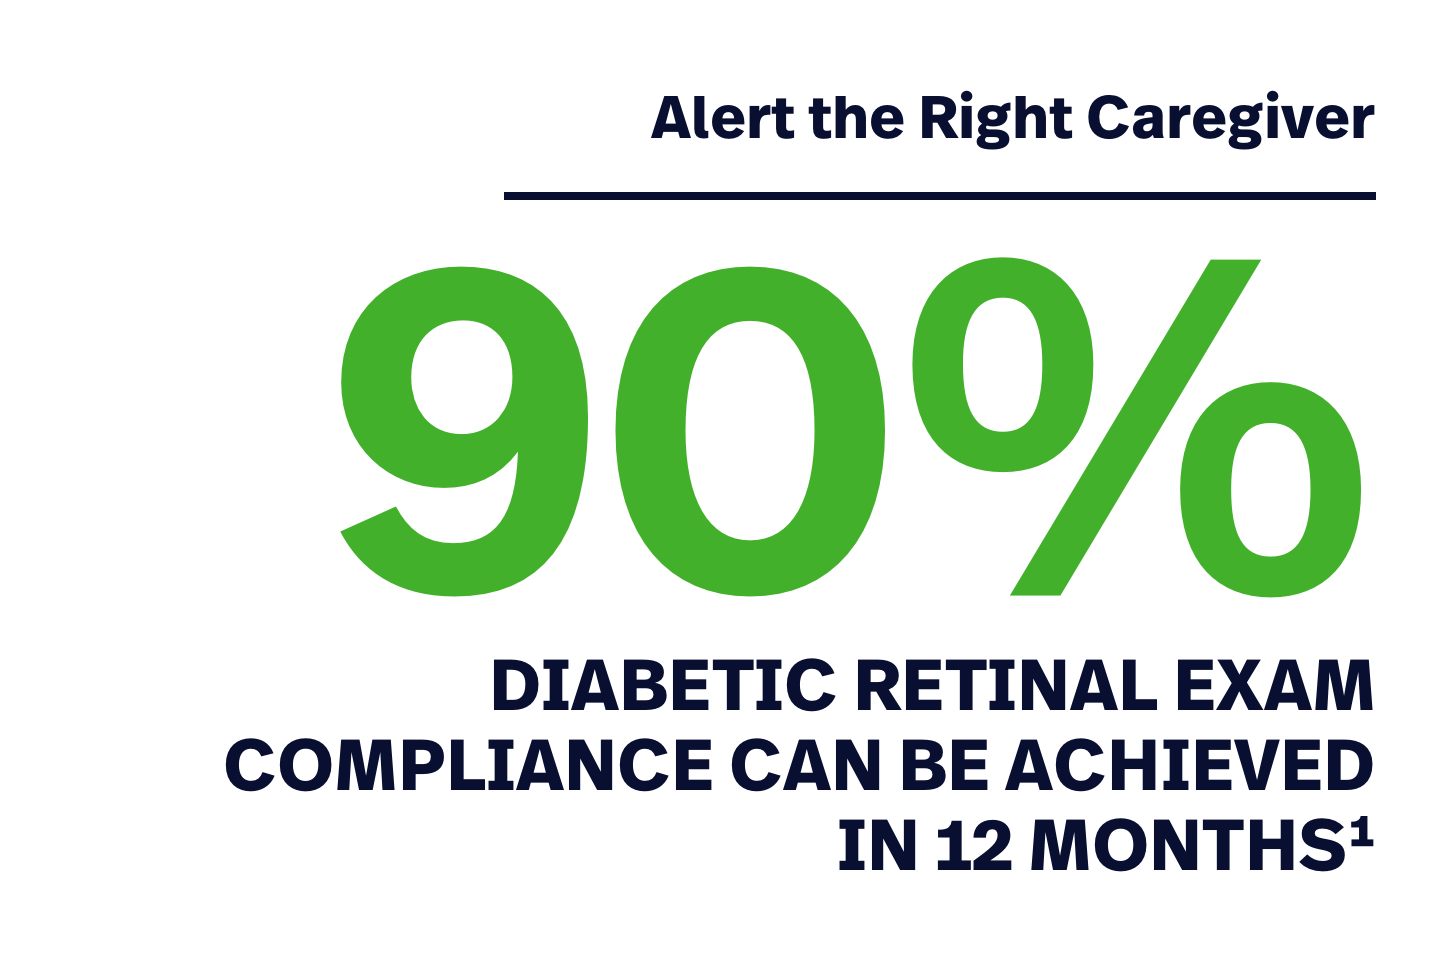 Alert the right caregiver: 90% diabetic retinal exam compliance can be achieved in 12 months